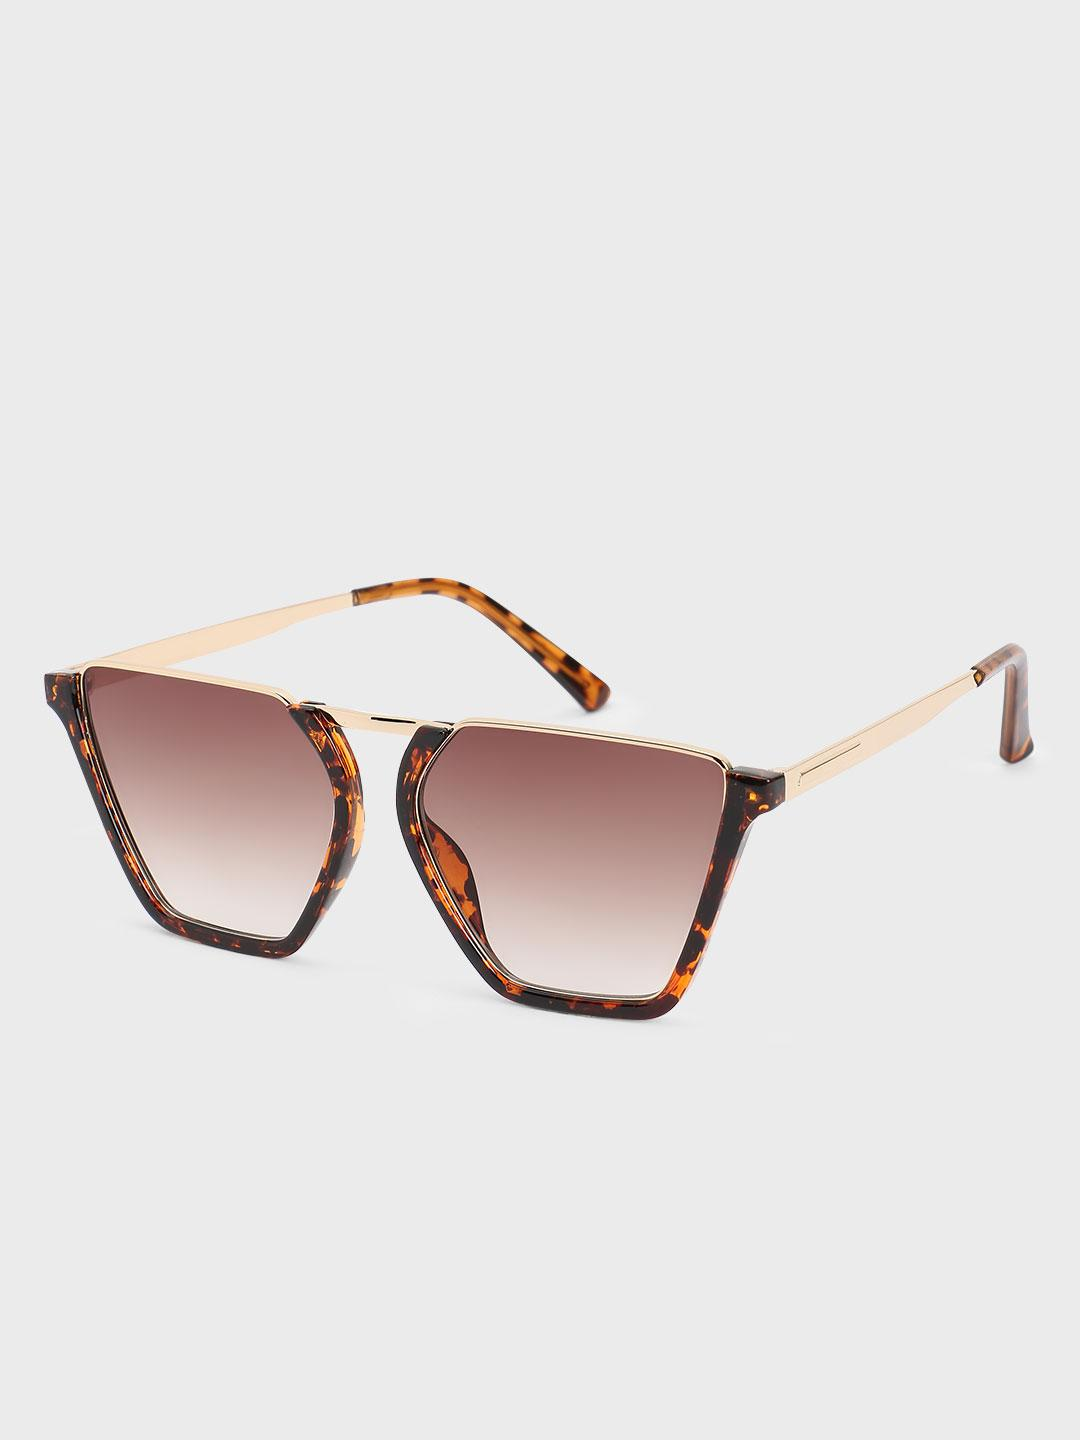 Origami Lily Brown Tortoise Shell Oversized Square Sunglasses 1